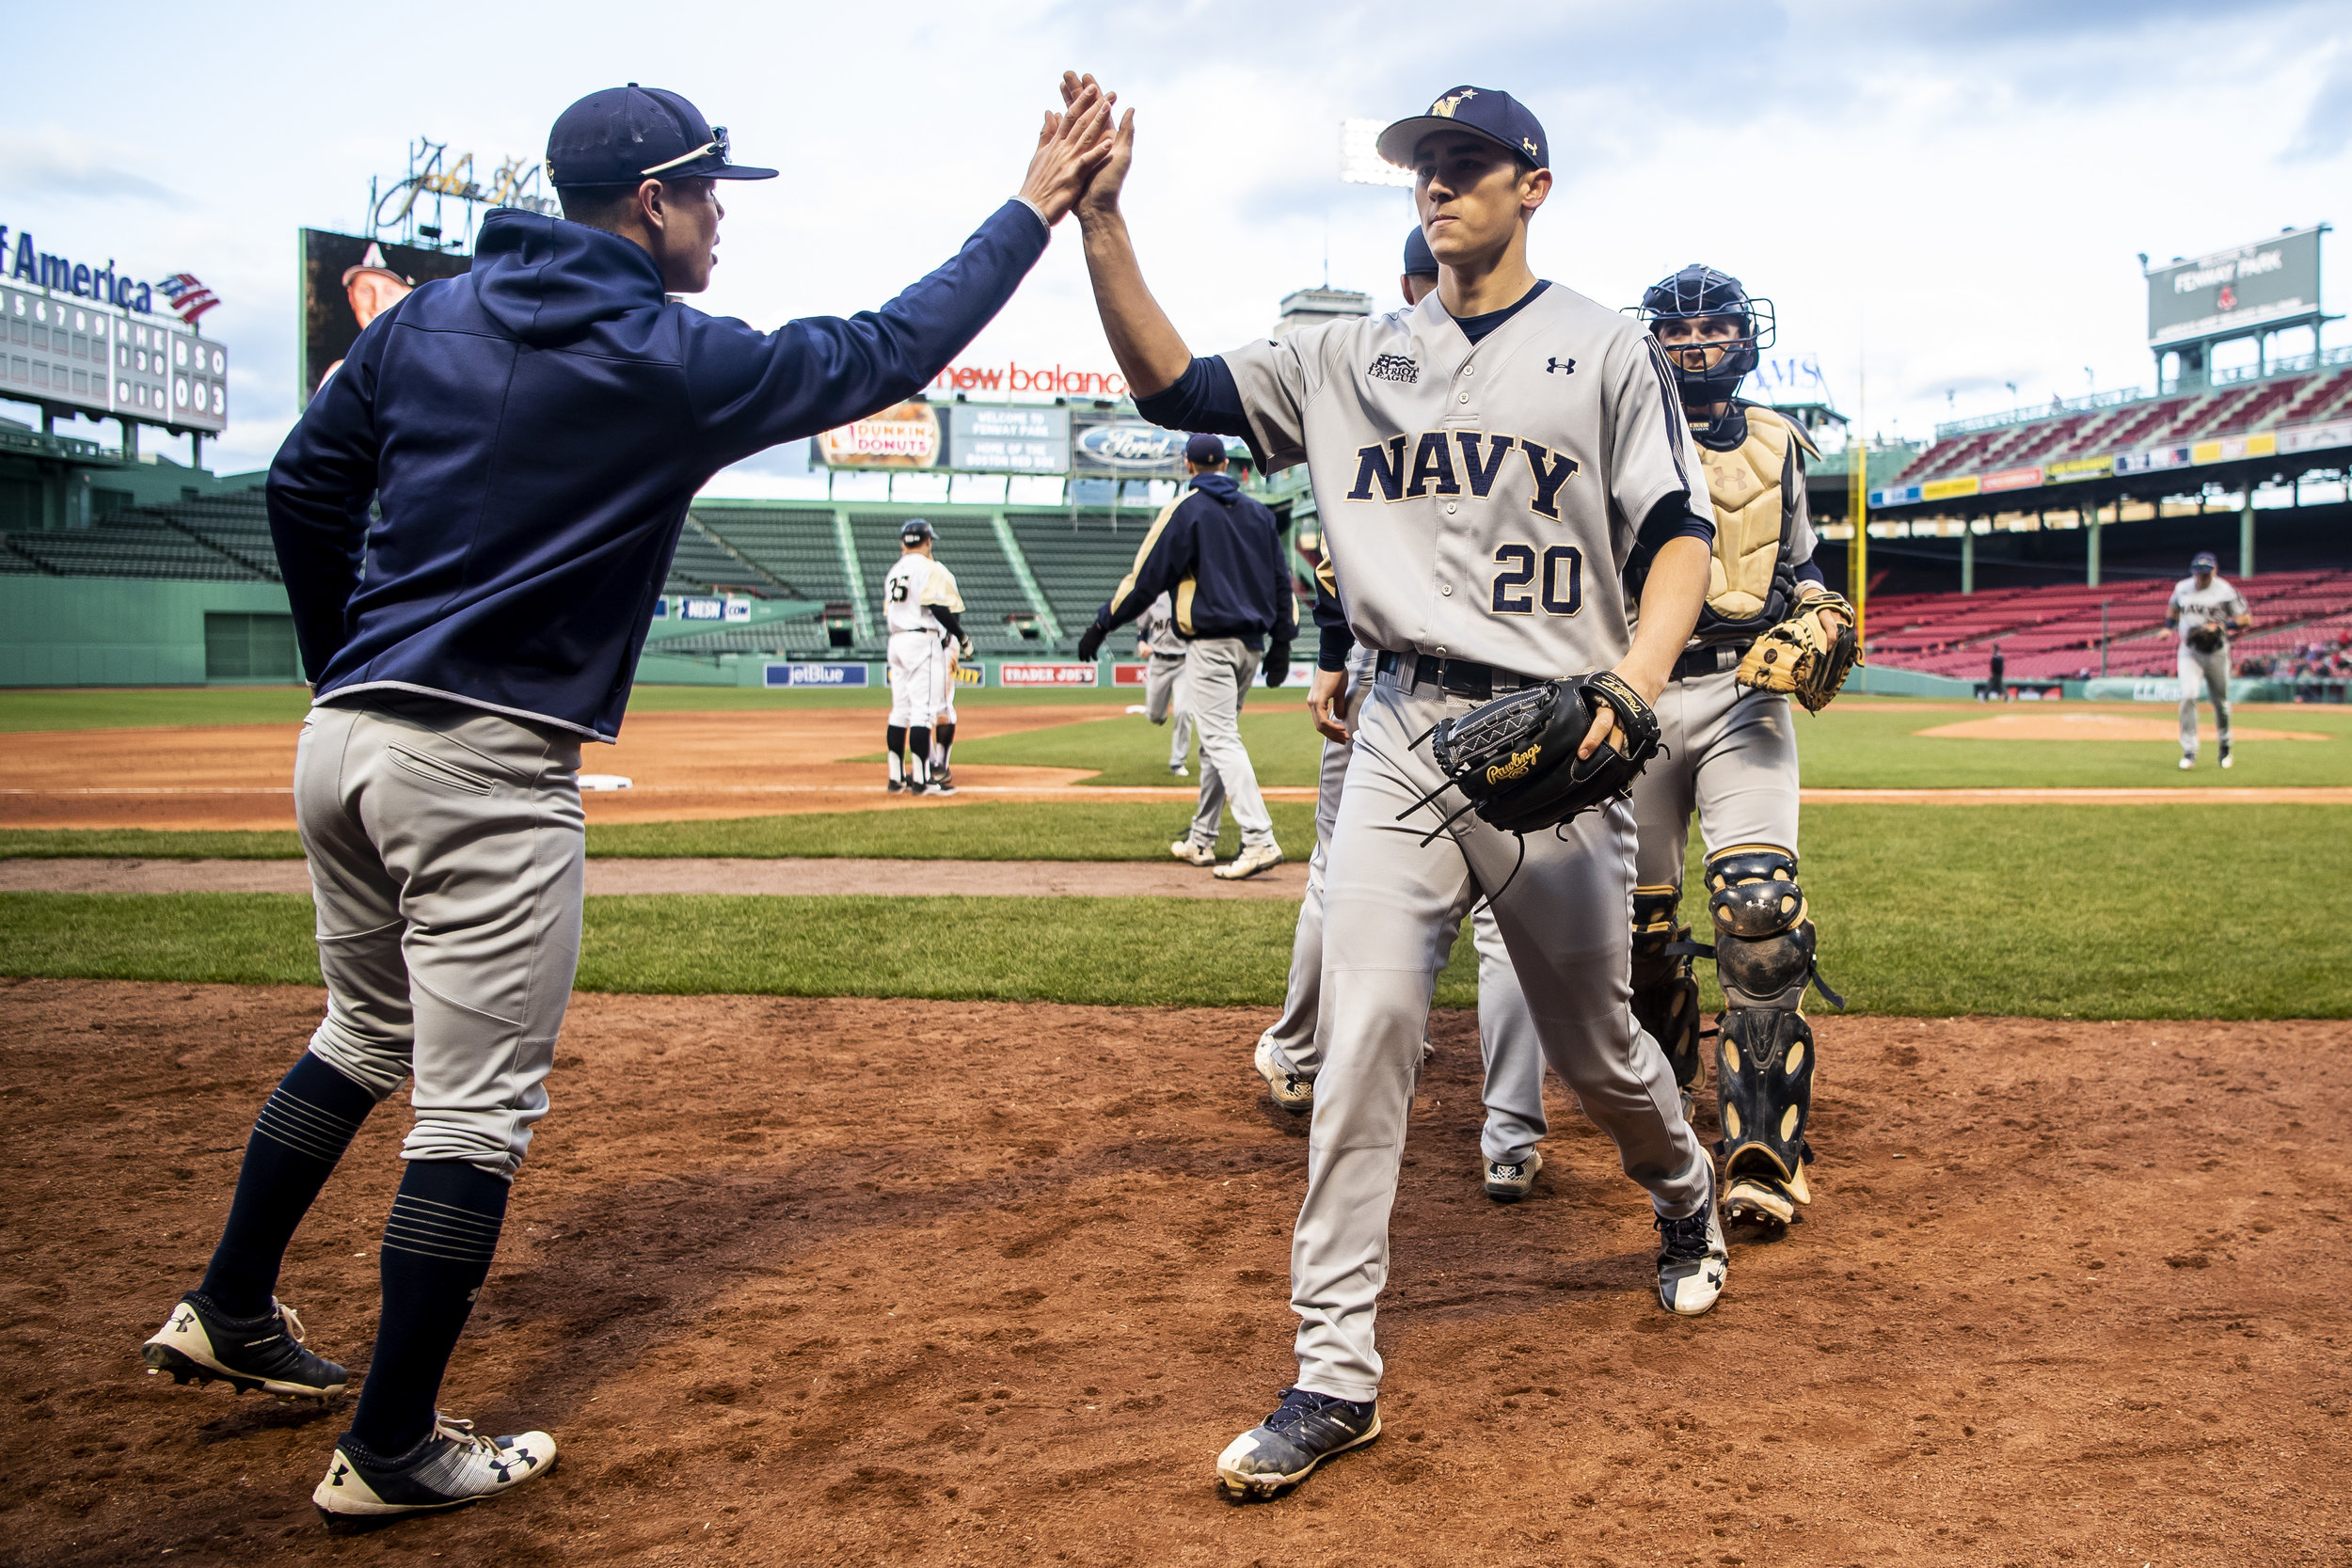 April 20, 2018, Boston, MA: The Navy pitcher walks off the field as Army - West Point faces The Naval Academy at Fenway Park in Boston, Massachusetts Friday, April 20, 2018. (Photo by Matthew Thomas/Boston Red Sox)